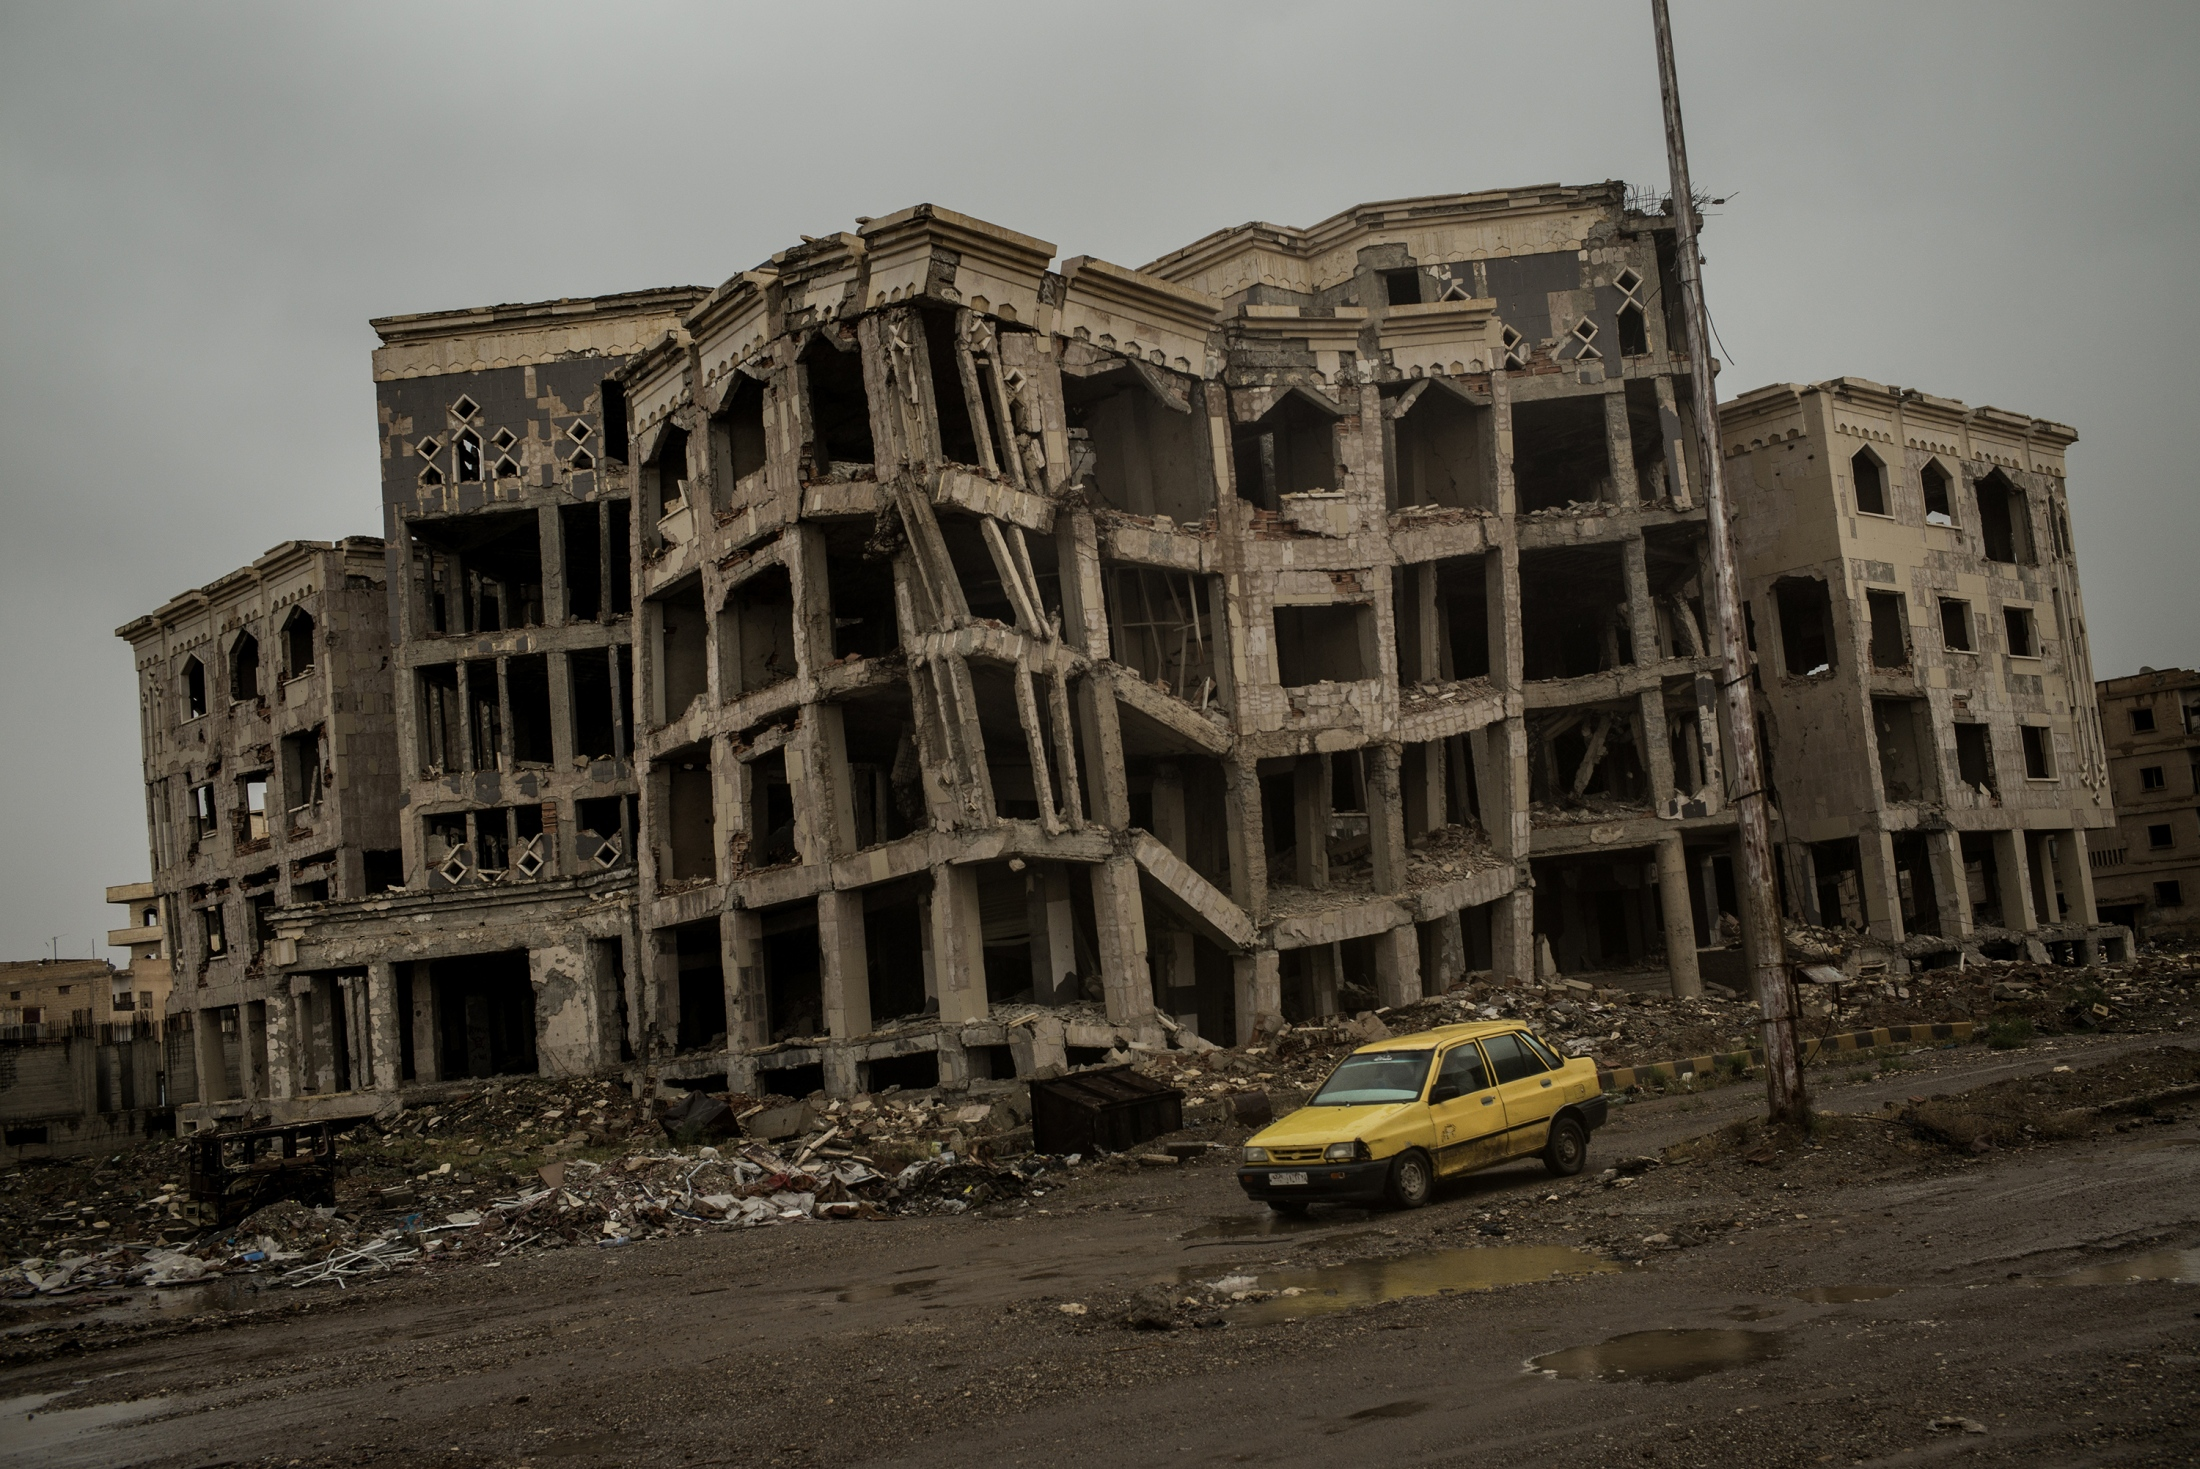 A view of damaged buildings seen through the rain, in Raqqa, Syria, on Friday, May 11, 2018. Seven months after ISIS was ousted from their capital, civilians are returning to rebuild their lives and homes. Without a visible presence of NGOs or strong support from the coalition because of ongoing security concerns, the city's residents and civil council and municipality have taken it upon themselves to clean up the rubble and reopen stores in time for Ramadan. An estimated half of the 400,000 civilians - the number of people who were in the city before coalition airstrikes began last June — have returned to a city devastated by airstrikes, street battles, and unexploded ordinance, including mines and booby traps left behind by the extremist militias. Infrastructure like bridges connecting the northern and southern parts of the city have been destroyed, forcing people to use flimsy barges to transport their vehicles, crops, and other goods to the city center. Late rains this year have also compounded the city's woes as it relies heavily on agriculture. Bodies also remain under the rubble, worsening fears that disease could easily break out as the weather becomes warmer.